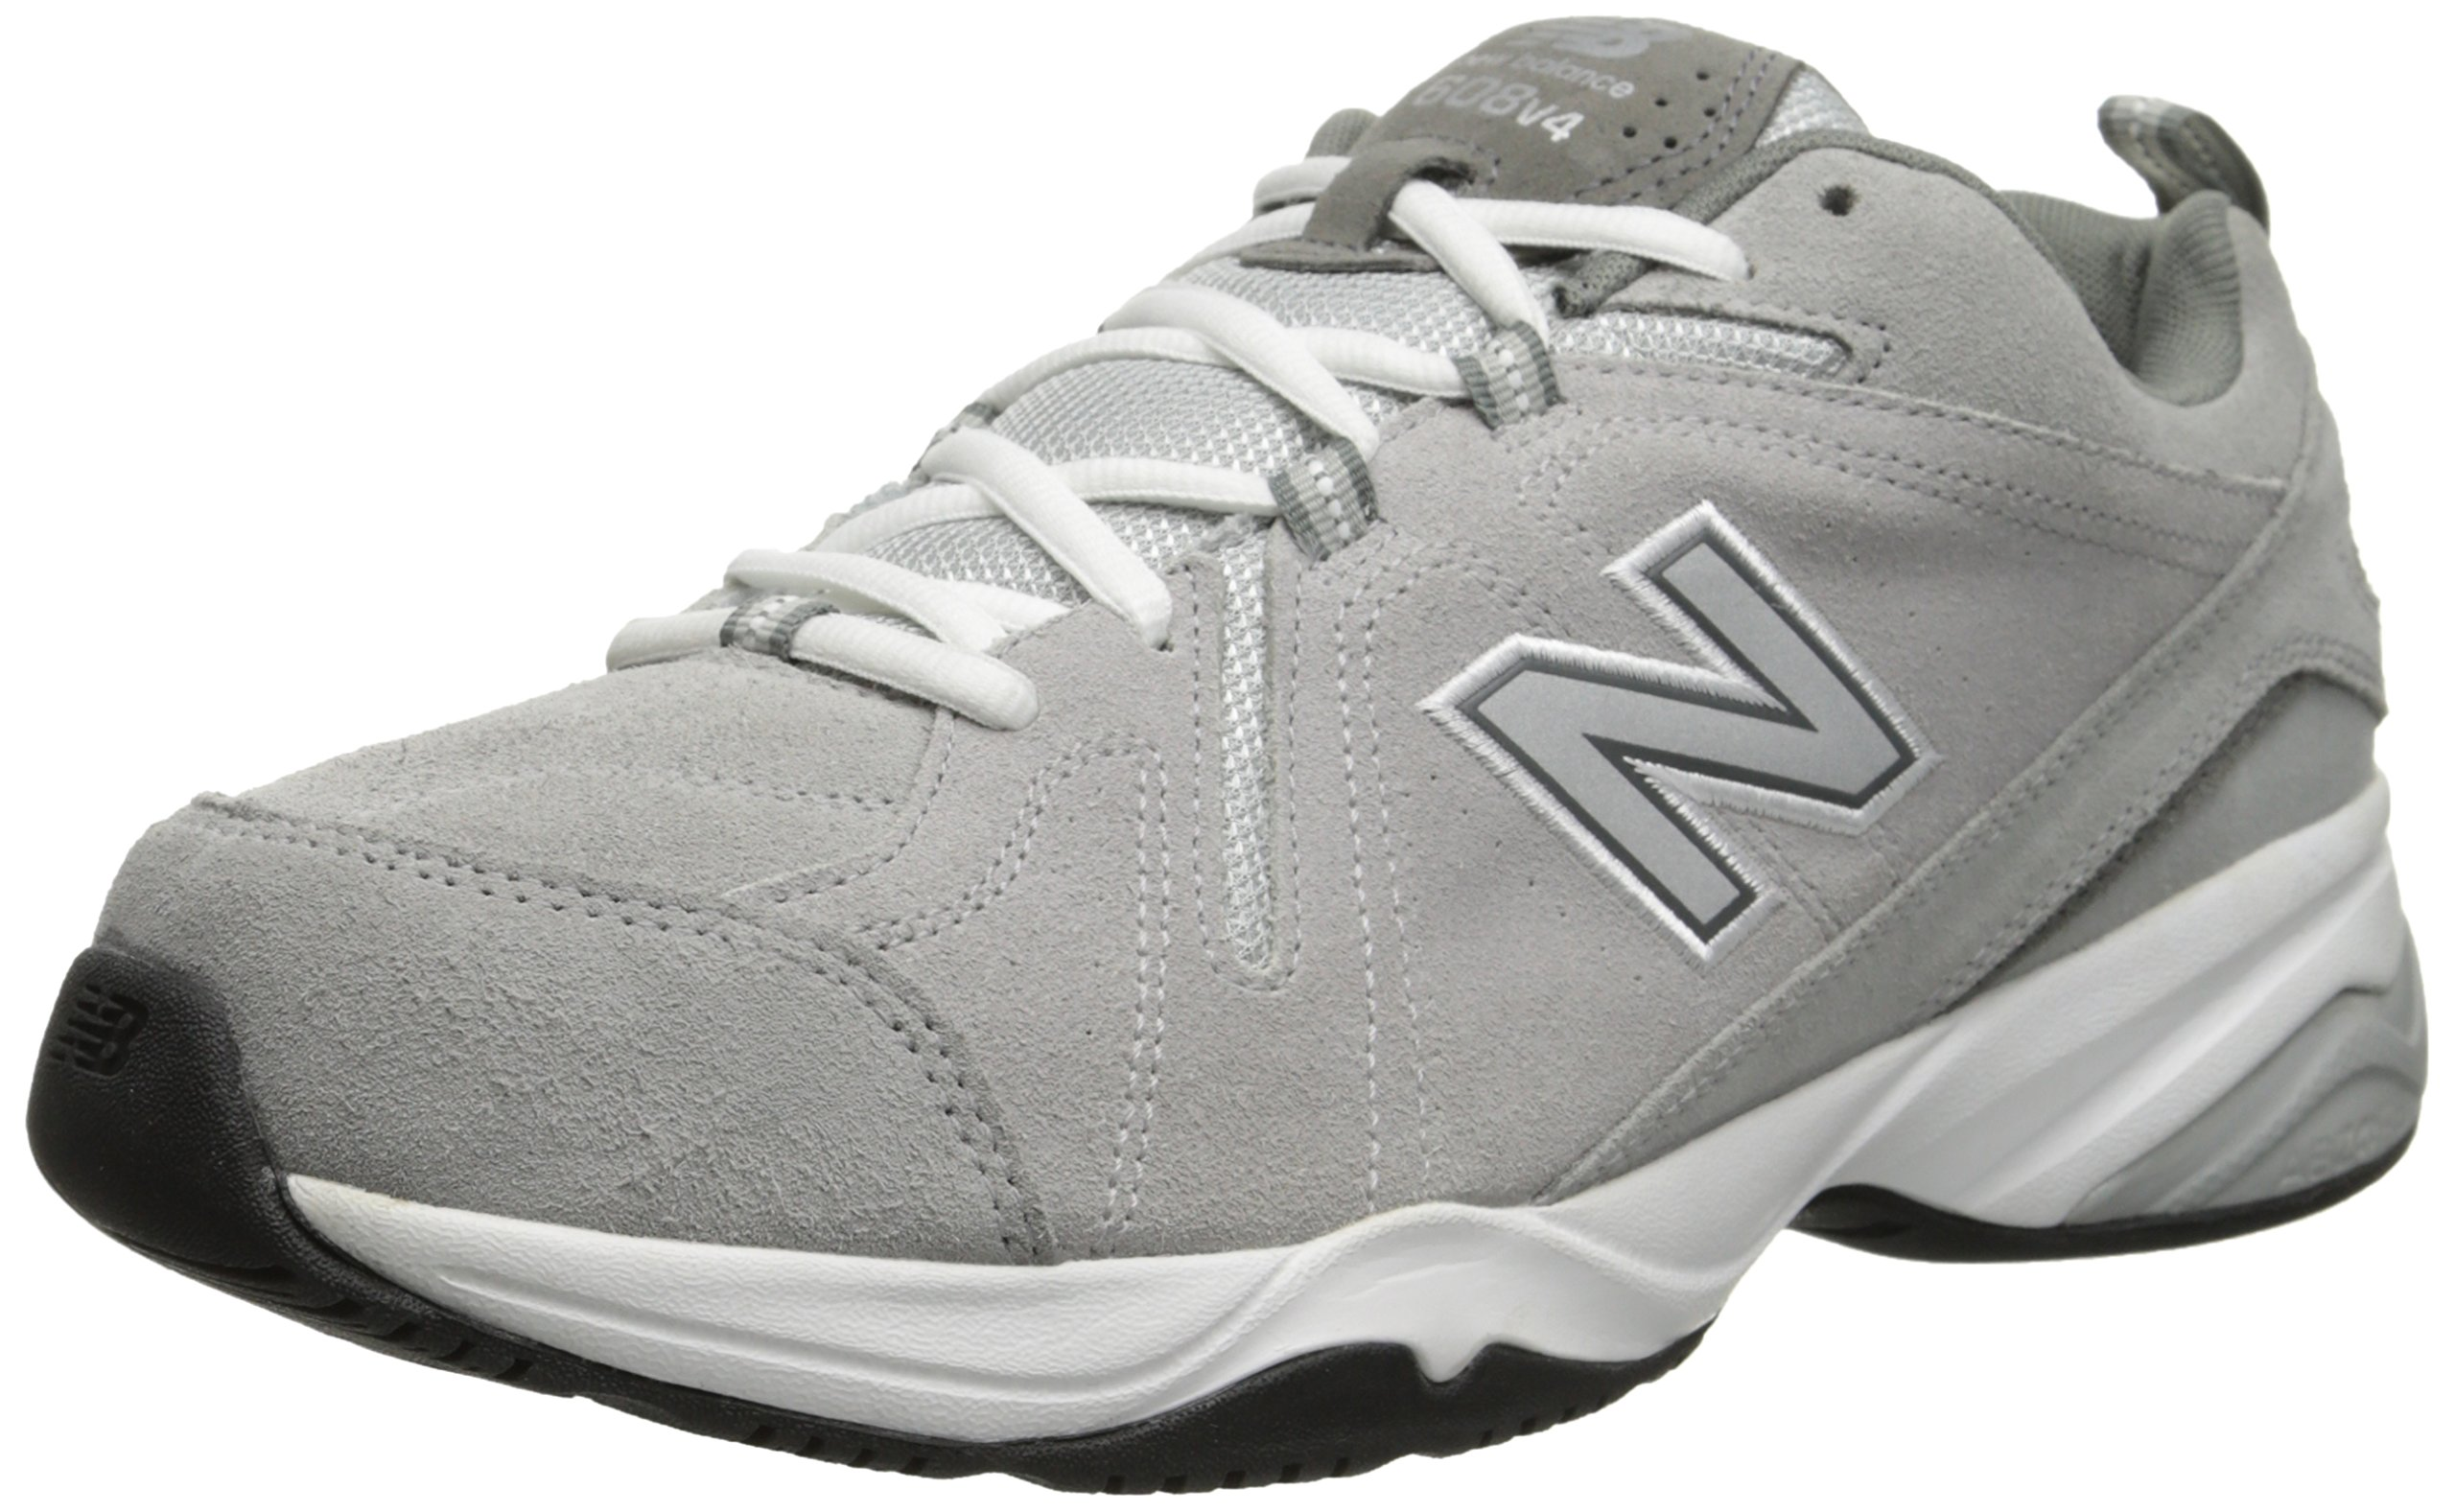 New Balance Men's MX608v4 Training Shoe, Grey, 12 4E US